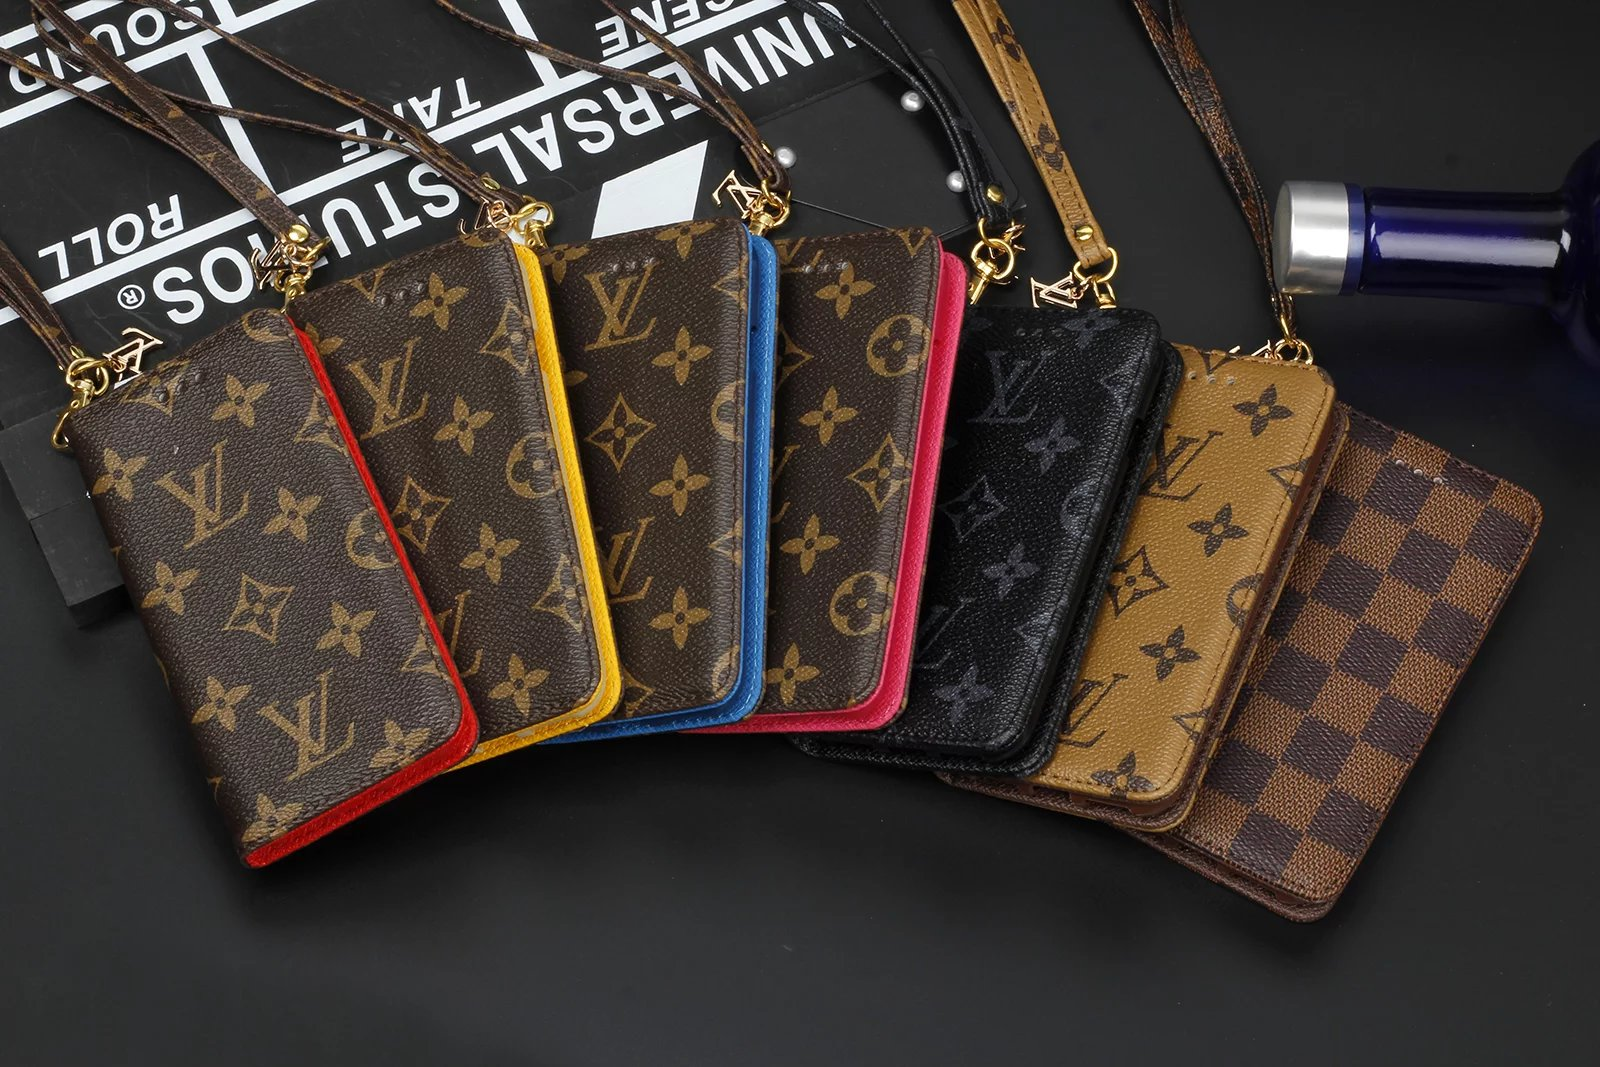 lederhülle iphone original iphone hülle Louis Vuitton iphone 8 Plus hüllen leder handyhülle iphone 8 Plus smartphone hülle designen iphone 8 Plus ca8 Plus schwarz iphone 8 Plus flip ca8 Plus ledertasche ipad 8 Plus hülle 8 Pluslbst gestalten handy schutzhülle iphone 8 Plus